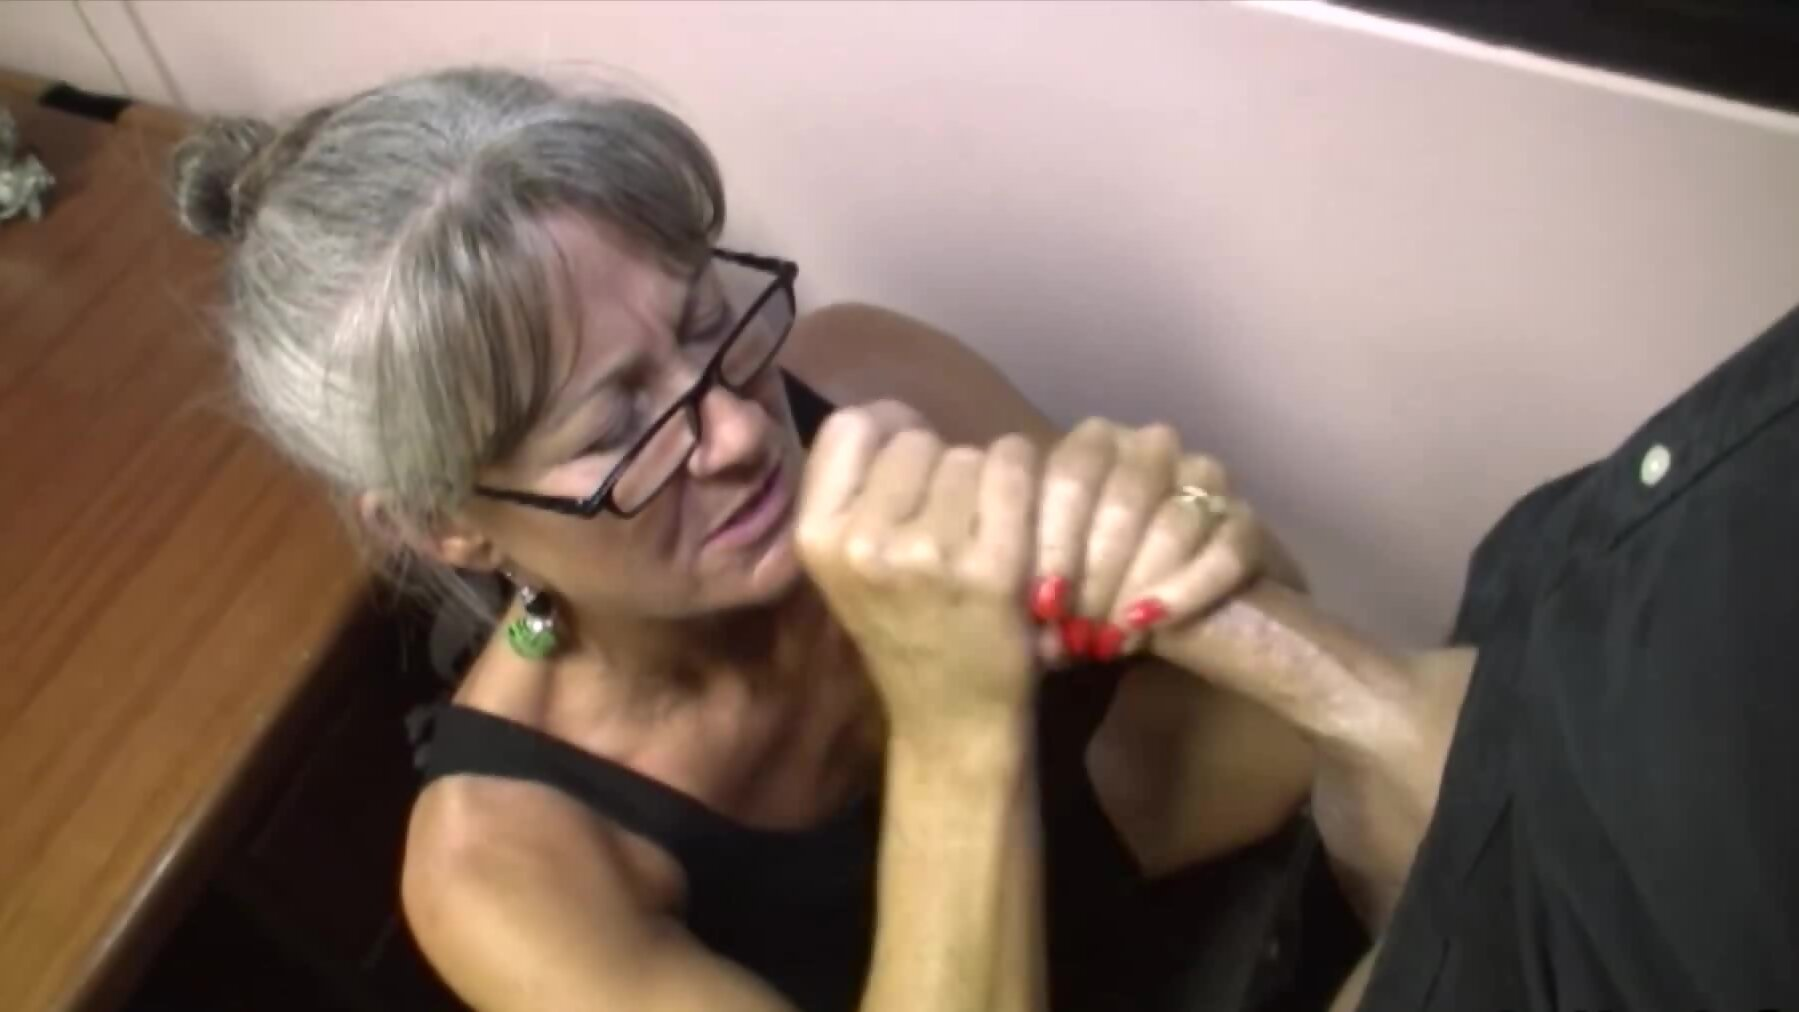 Stepmother gives blowjob hoping stepdaughter stays virgin